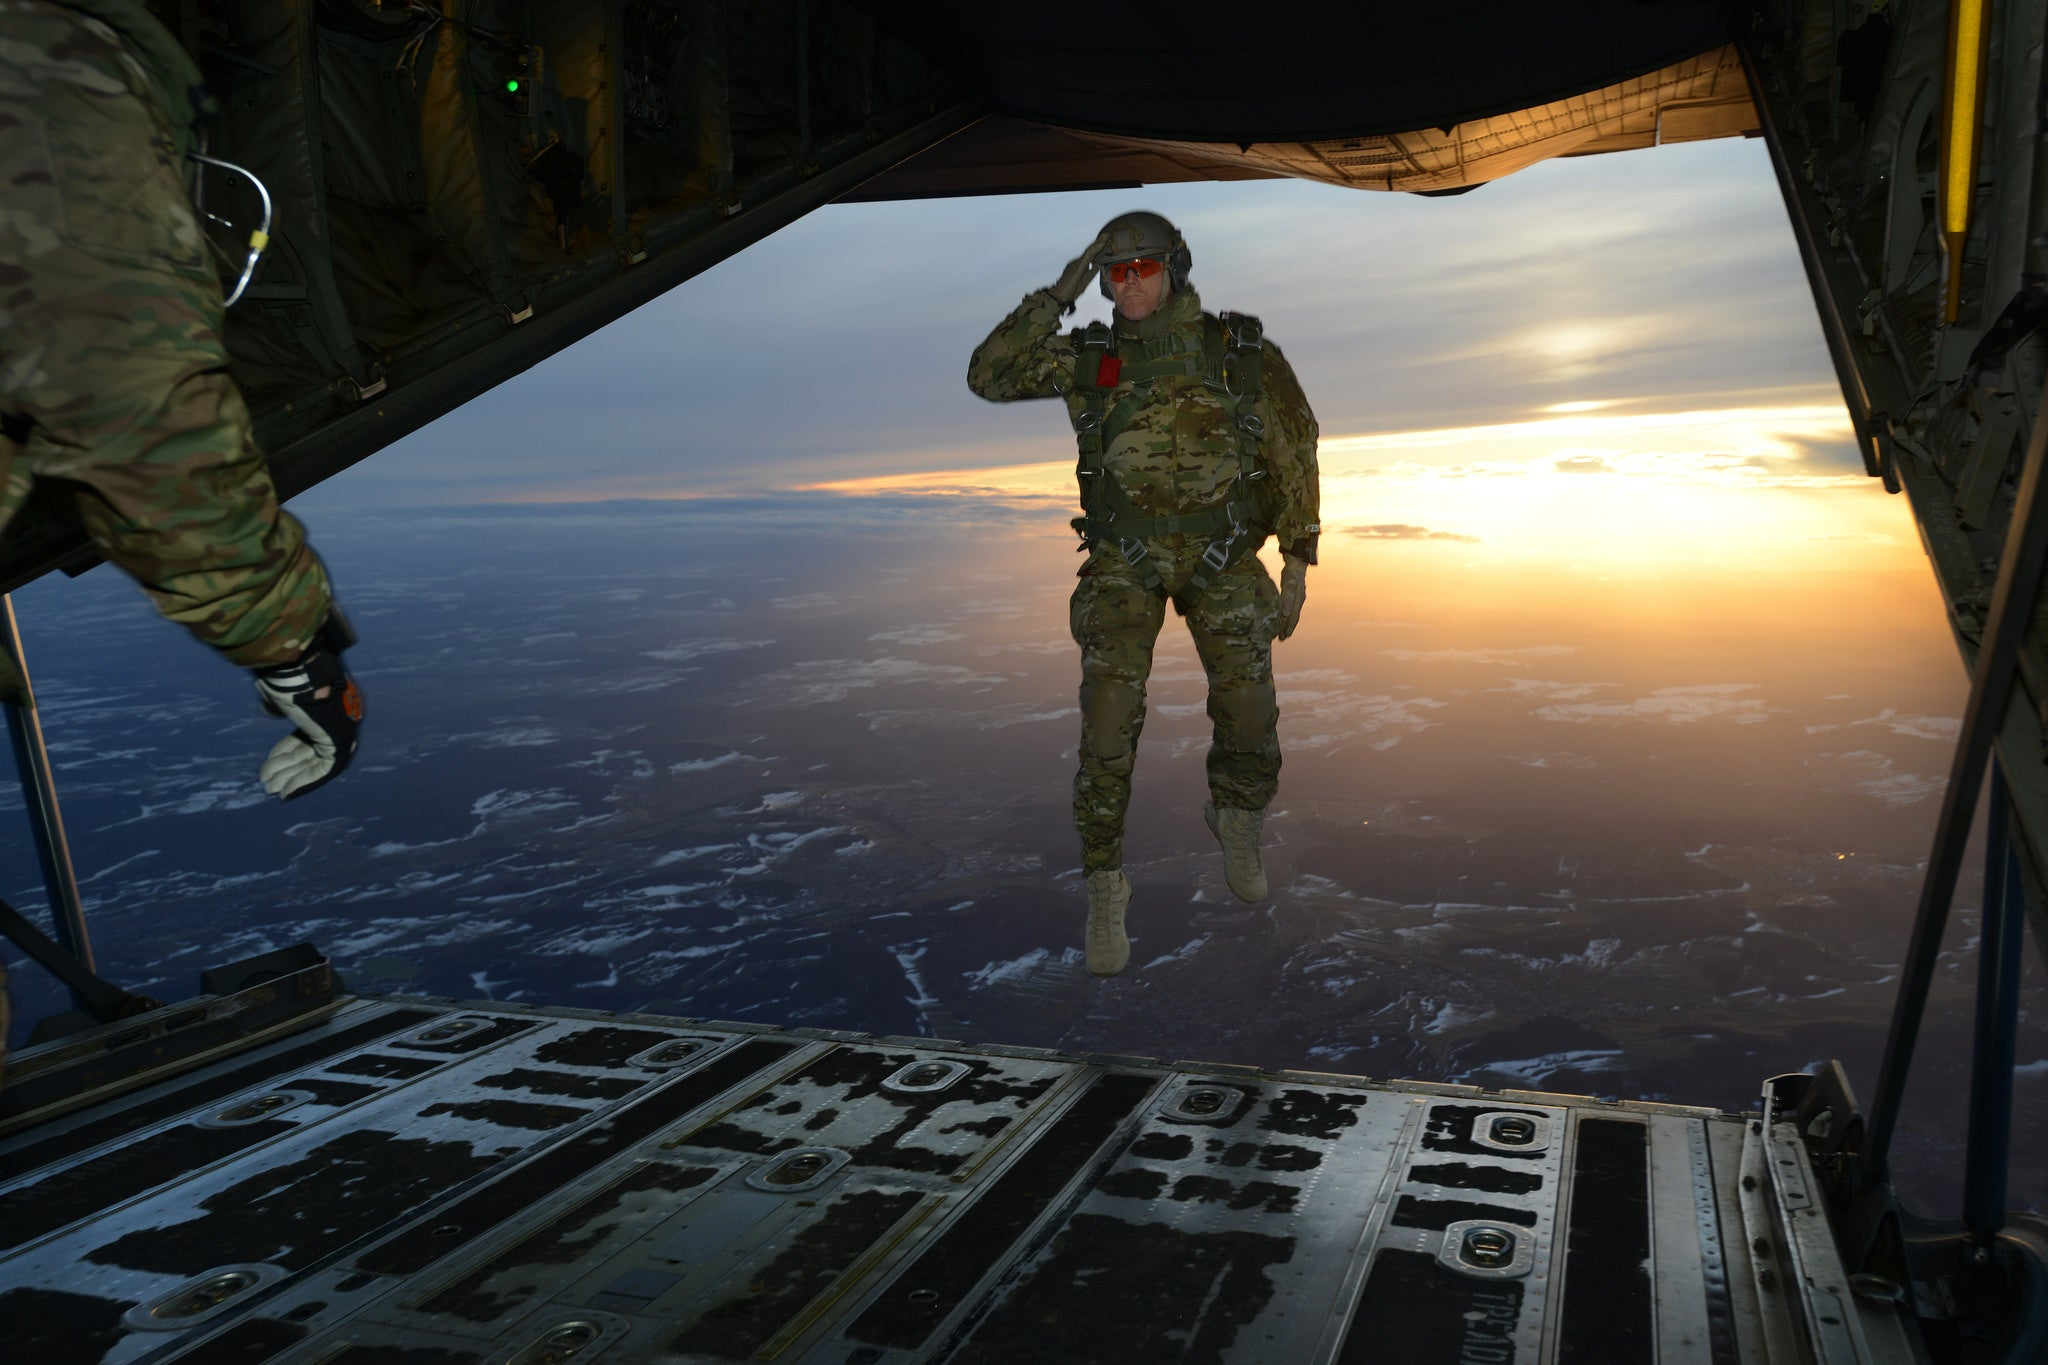 This Photo Of A Soldier Suspended In Midair Is So Cool It Feels Fake